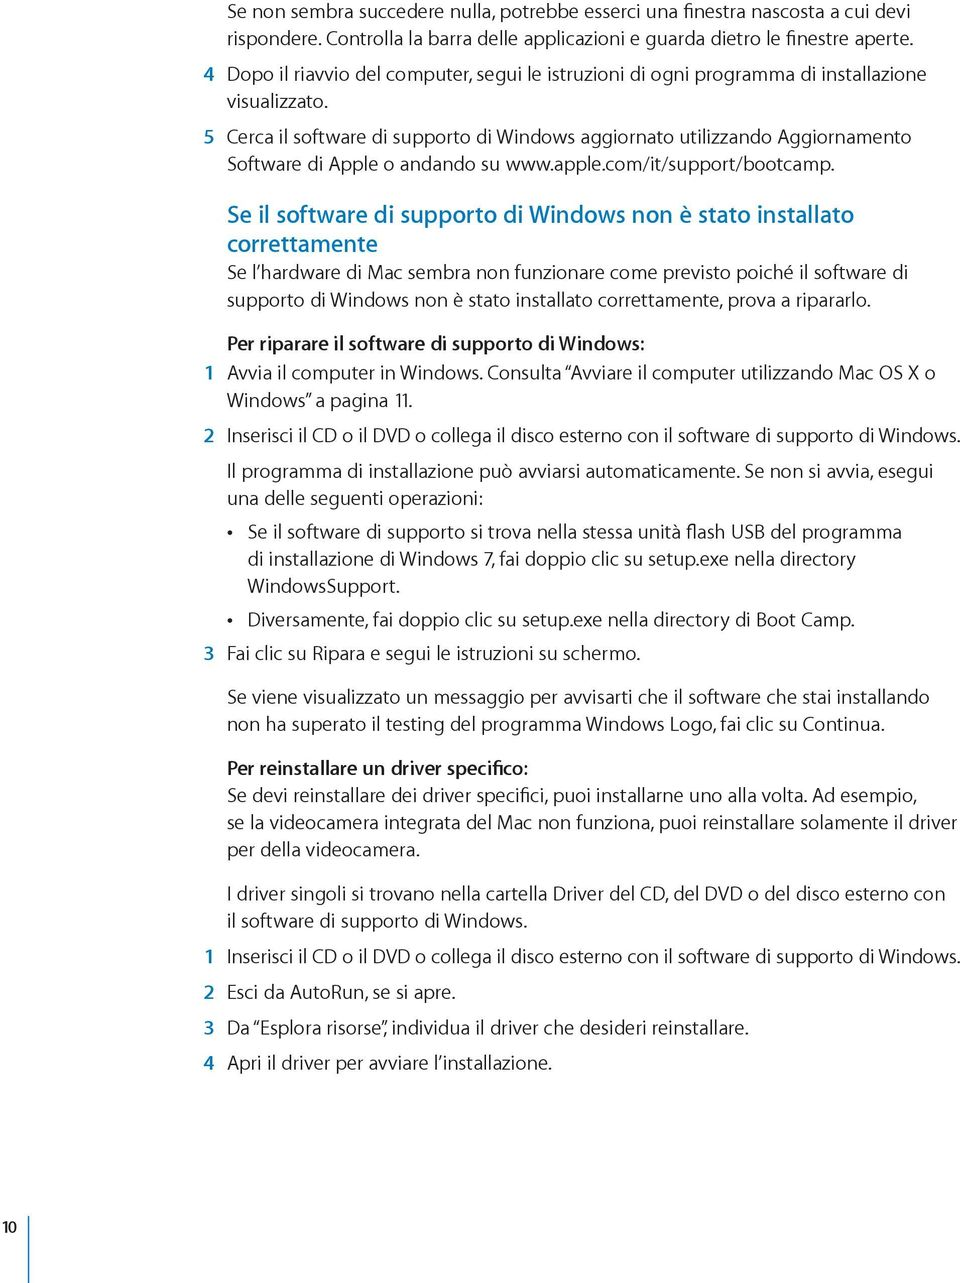 5 Cerca il software di supporto di Windows aggiornato utilizzando Aggiornamento Software di Apple o andando su www.apple.com/it/support/bootcamp.